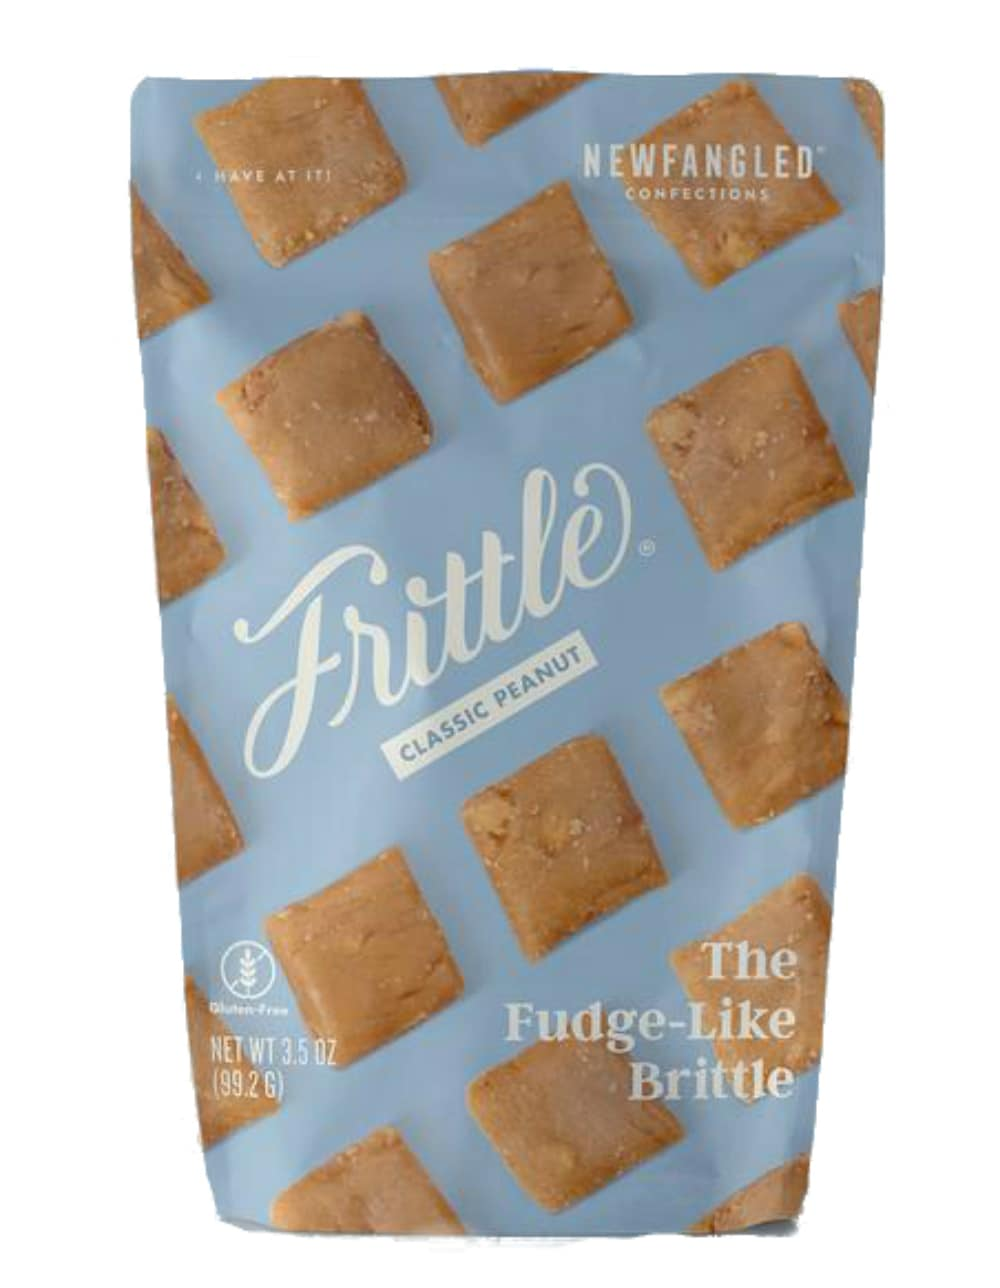 Frittle-Fudge-Like Brittle